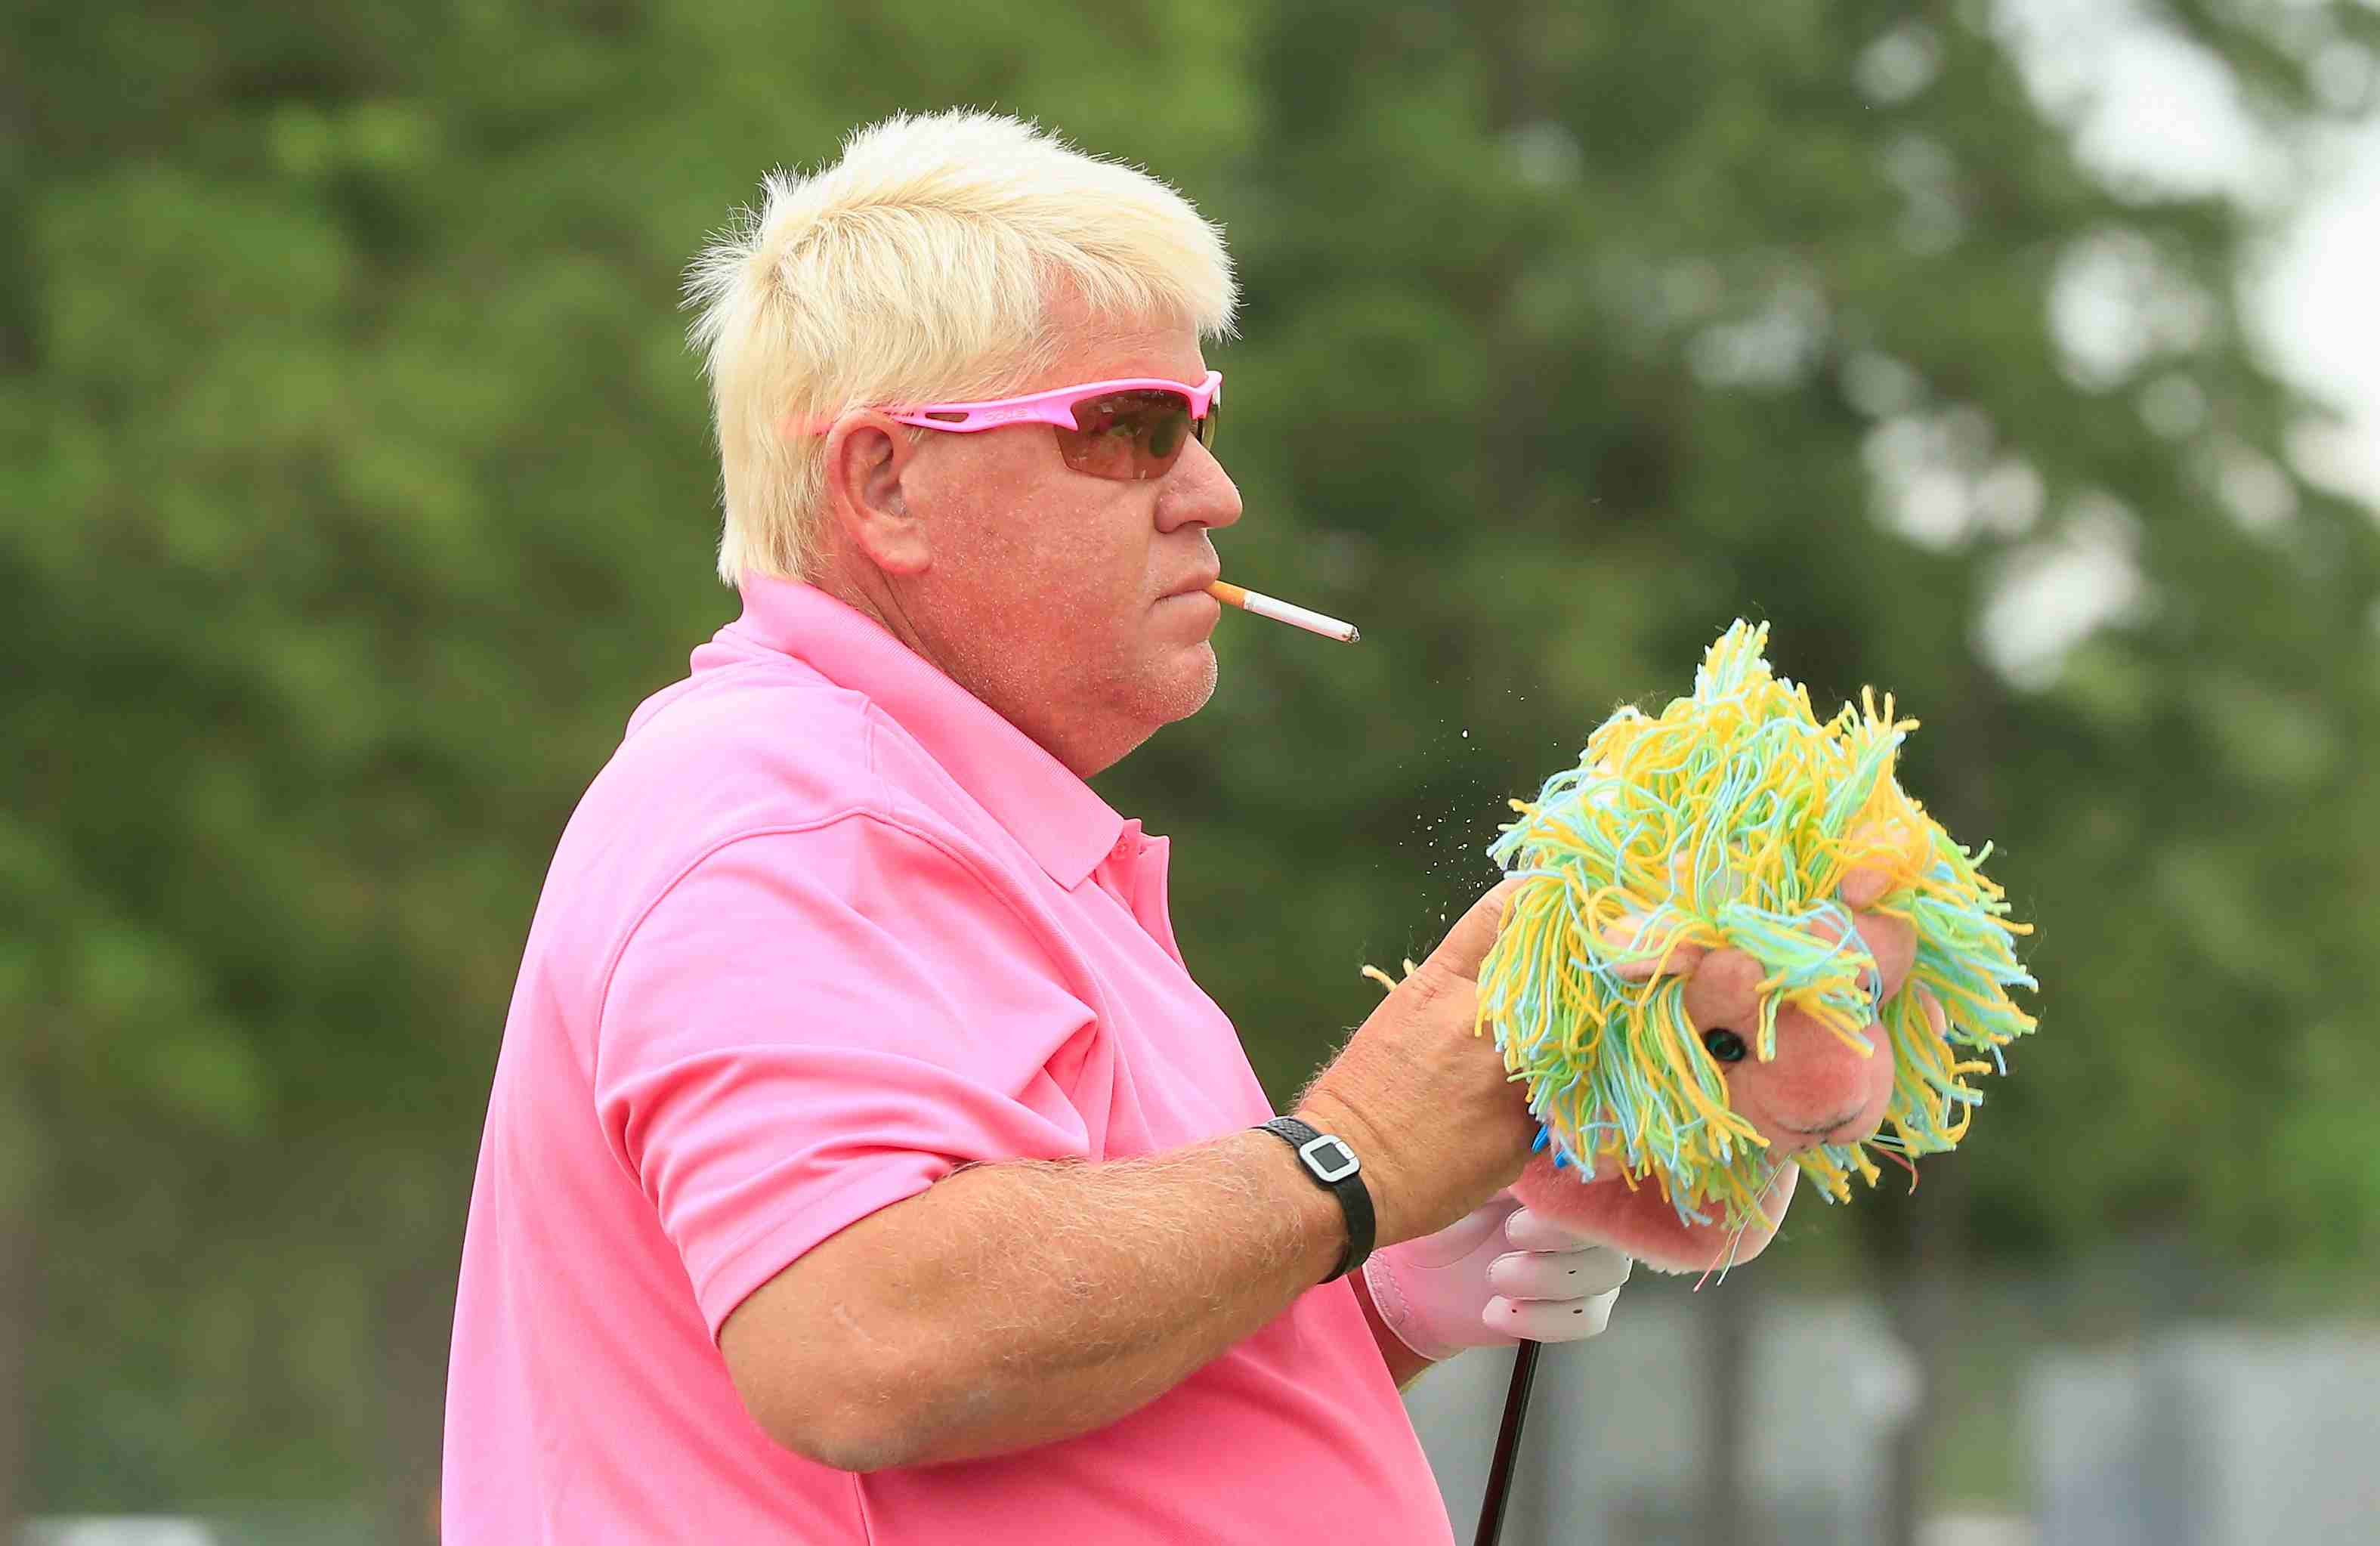 John Daly waits on the practice ground during the final round of the Insperity Invitational at The Woodlands Country Club on May 8, 2016